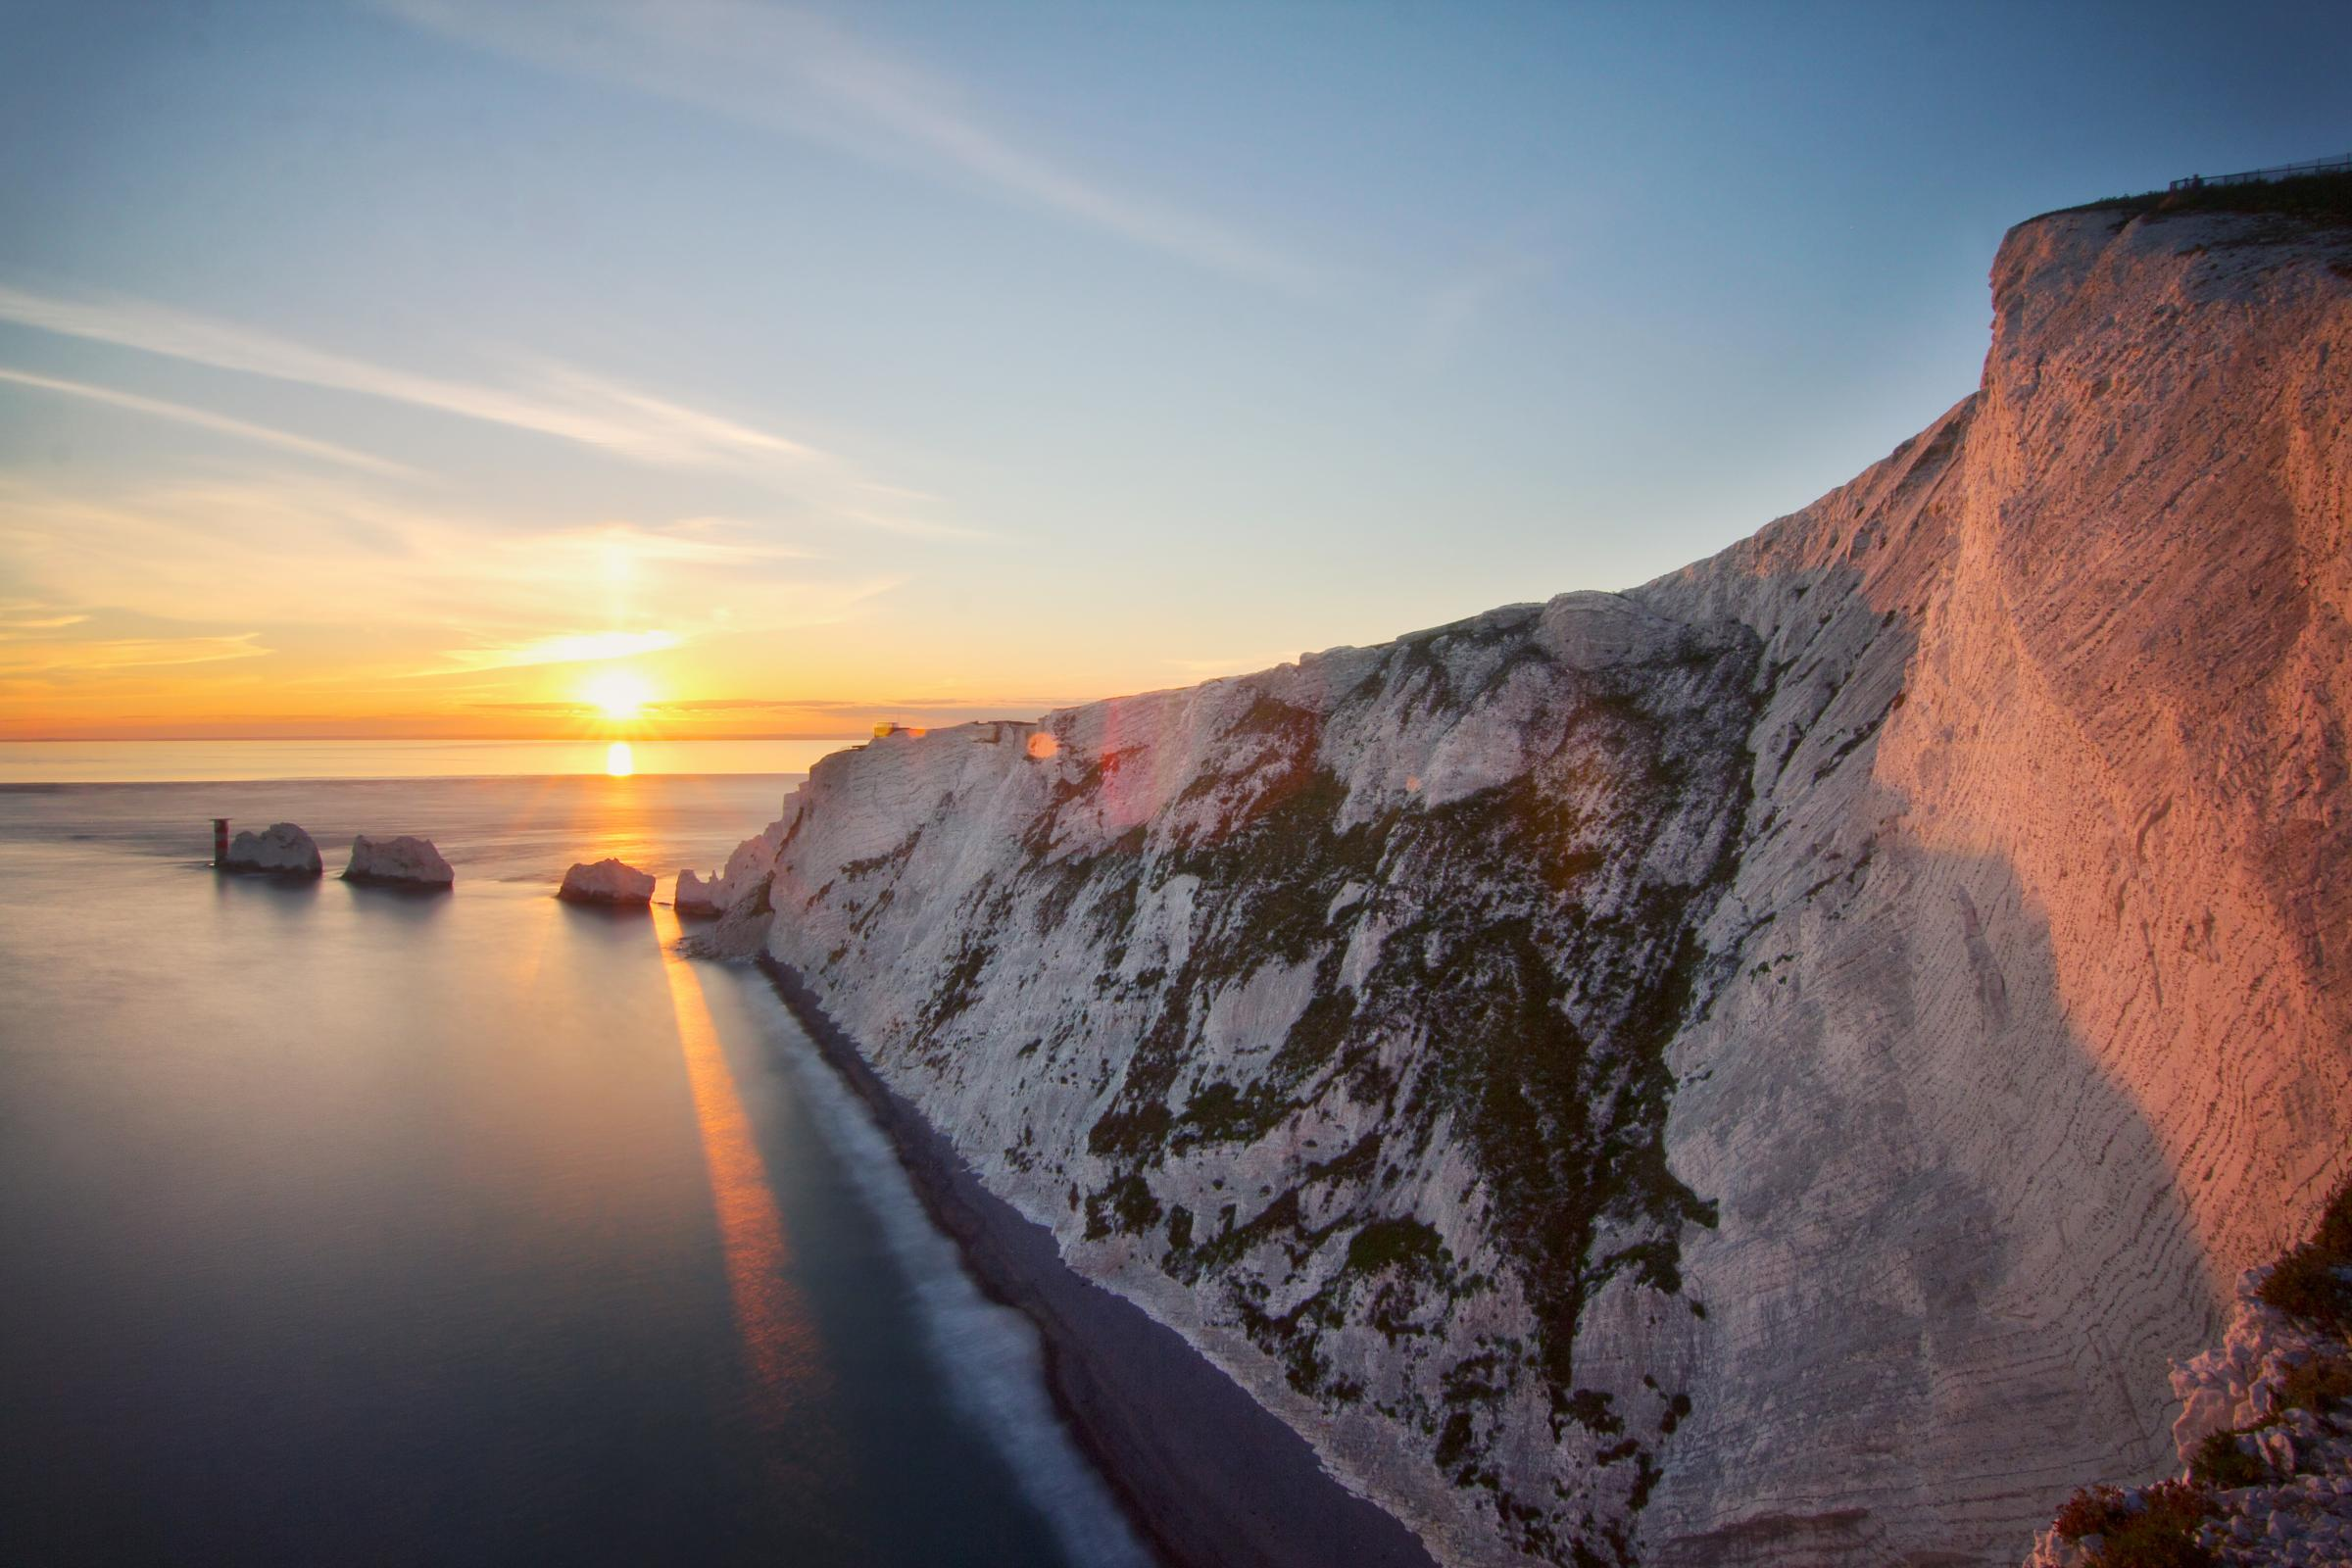 The Needles looks great at sunset, when the sun shines!